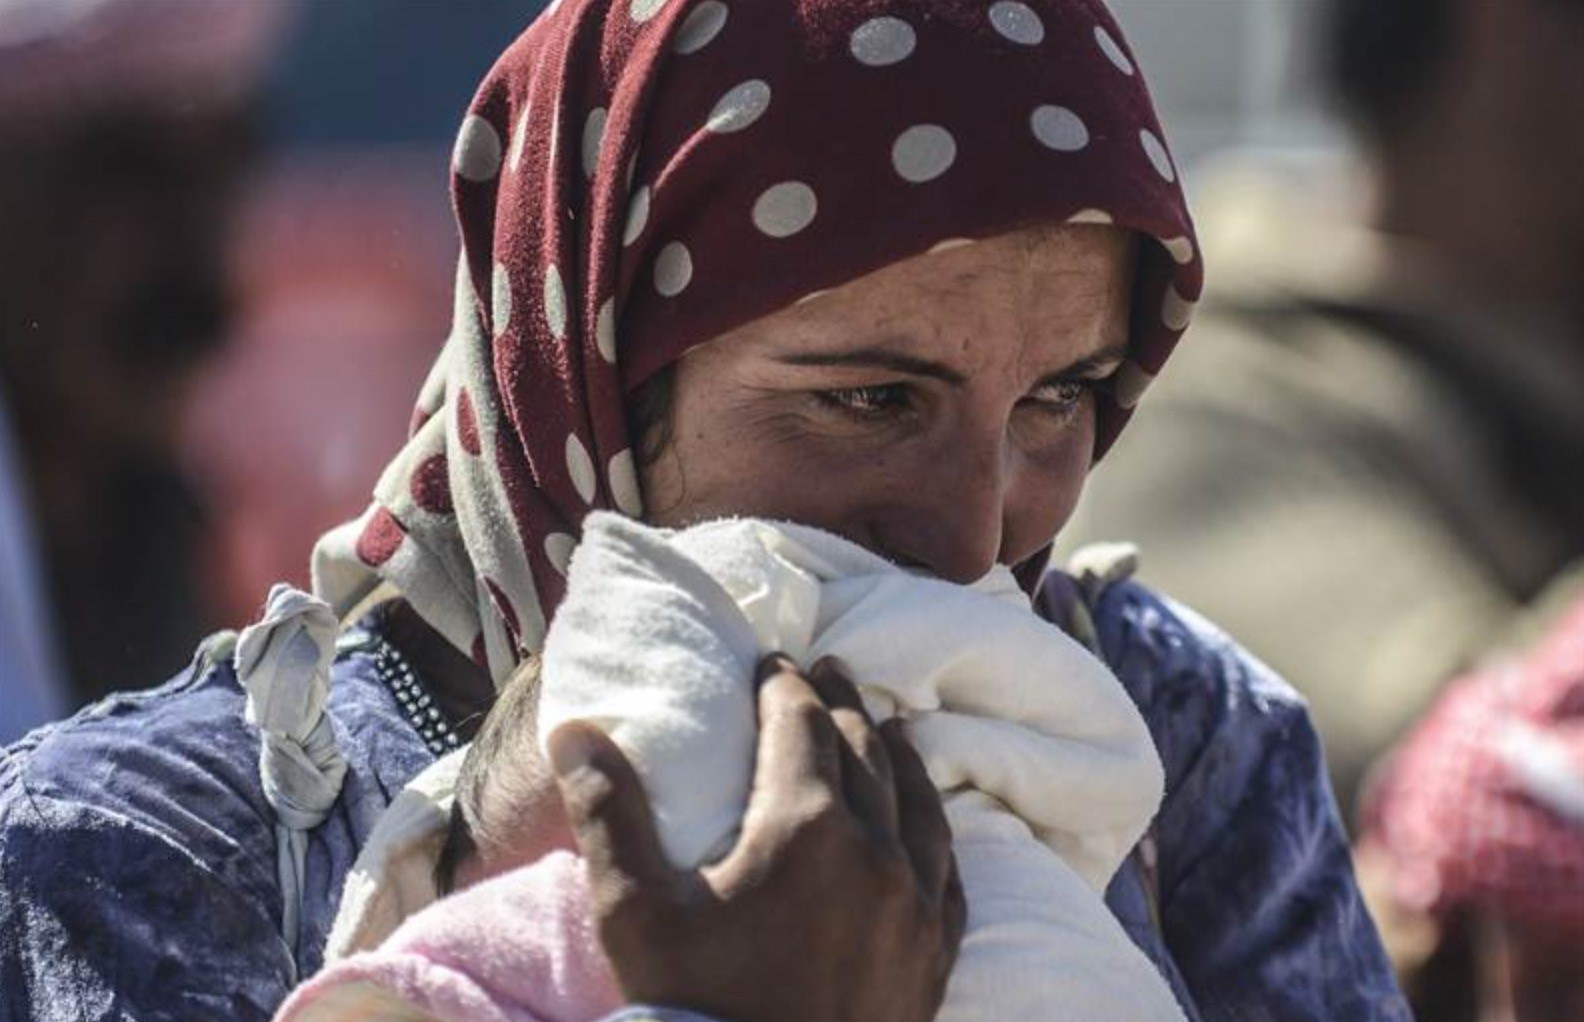 Syrian Kurdish woman cries as she holds her baby.